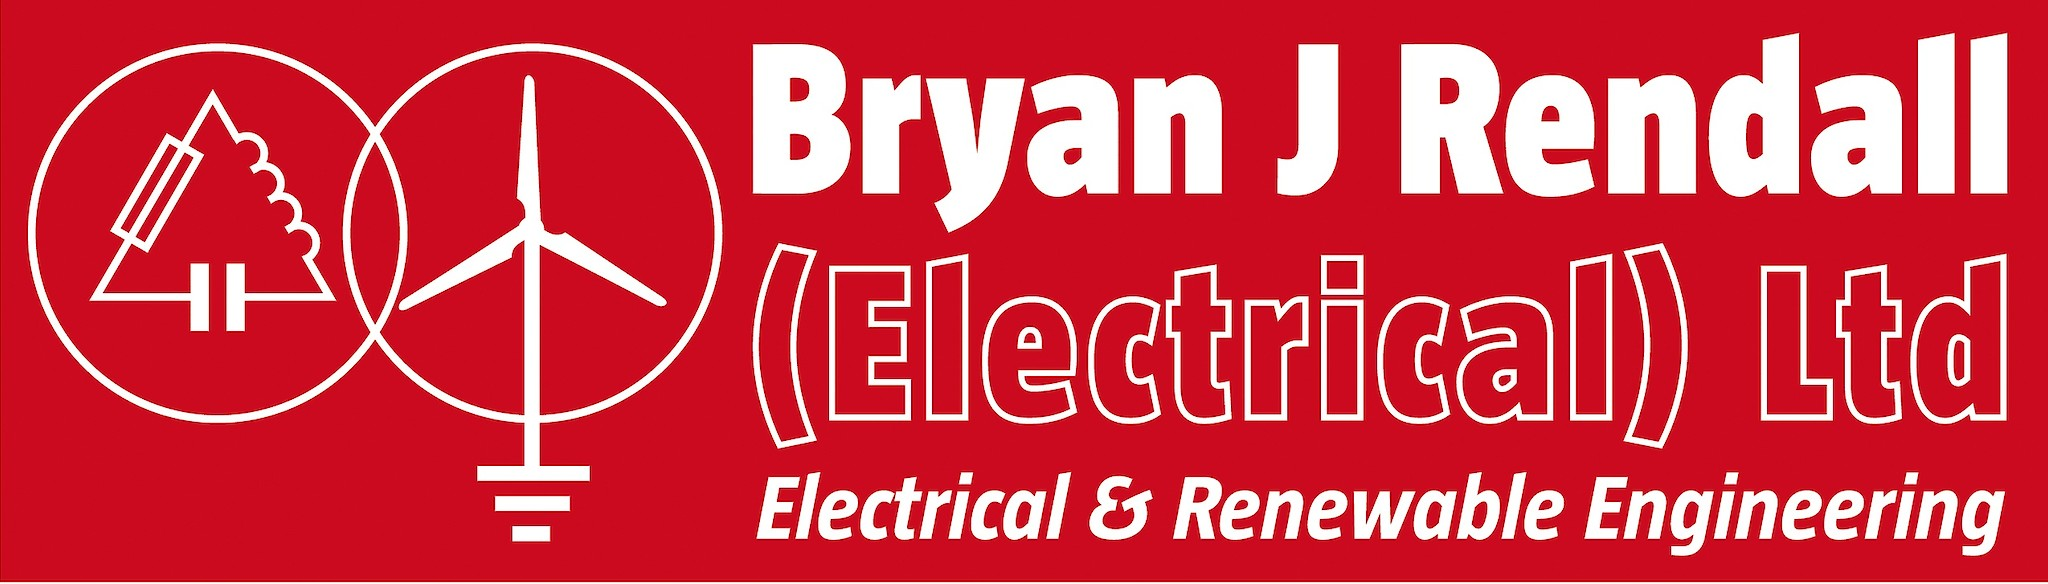 Bryan J Rendall Electrical Ltd Logo